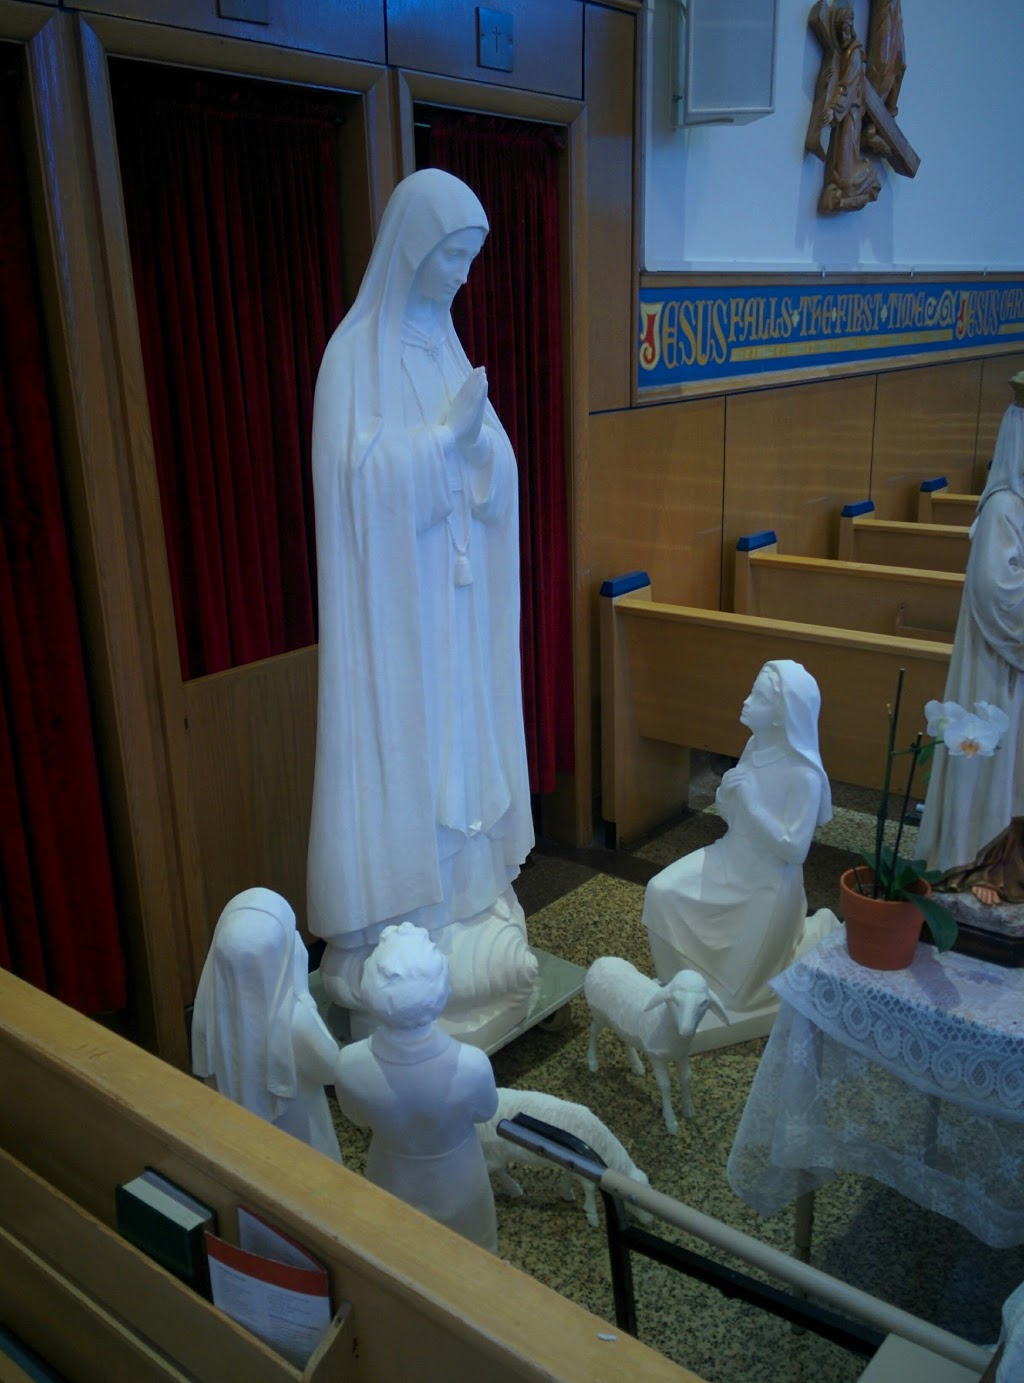 Our Lady of Fatima Shrine | church | 3170 St Clair Ave E, Scarborough, ON M1L 1V6, Canada | 4167572806 OR +1 416-757-2806